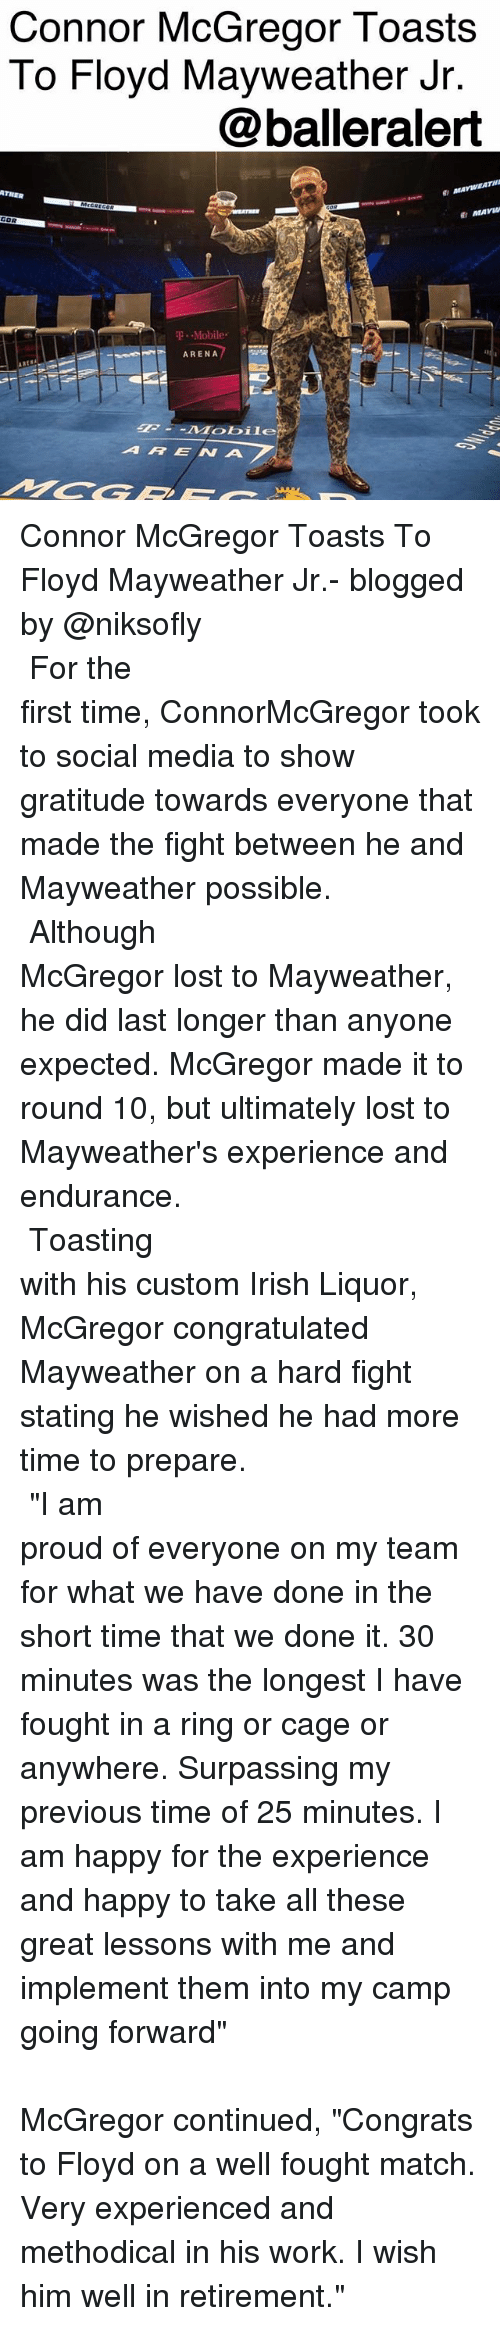 "Floyd Mayweather, Irish, and Mayweather: Connor McGregor Toasts  To Floyd Mayweather Jr  @balleralert  ATHER  T .-Mobile.  ARENA  ARENA Connor McGregor Toasts To Floyd Mayweather Jr.- blogged by @niksofly ⠀⠀⠀⠀⠀⠀⠀⠀⠀⠀⠀⠀⠀⠀⠀⠀⠀⠀⠀⠀⠀⠀⠀⠀⠀⠀⠀⠀⠀⠀⠀⠀⠀⠀⠀⠀ For the first time, ConnorMcGregor took to social media to show gratitude towards everyone that made the fight between he and Mayweather possible. ⠀⠀⠀⠀⠀⠀⠀⠀⠀⠀⠀⠀⠀⠀⠀⠀⠀⠀⠀⠀⠀⠀⠀⠀⠀⠀⠀⠀⠀⠀⠀⠀⠀⠀⠀⠀ Although McGregor lost to Mayweather, he did last longer than anyone expected. McGregor made it to round 10, but ultimately lost to Mayweather's experience and endurance. ⠀⠀⠀⠀⠀⠀⠀⠀⠀⠀⠀⠀⠀⠀⠀⠀⠀⠀⠀⠀⠀⠀⠀⠀⠀⠀⠀⠀⠀⠀⠀⠀⠀⠀⠀⠀ Toasting with his custom Irish Liquor, McGregor congratulated Mayweather on a hard fight stating he wished he had more time to prepare. ⠀⠀⠀⠀⠀⠀⠀⠀⠀⠀⠀⠀⠀⠀⠀⠀⠀⠀⠀⠀⠀⠀⠀⠀⠀⠀⠀⠀⠀⠀⠀⠀⠀⠀⠀⠀ ""I am proud of everyone on my team for what we have done in the short time that we done it. 30 minutes was the longest I have fought in a ring or cage or anywhere. Surpassing my previous time of 25 minutes. I am happy for the experience and happy to take all these great lessons with me and implement them into my camp going forward"" ⠀⠀⠀⠀⠀⠀⠀⠀⠀⠀⠀⠀⠀⠀⠀⠀⠀⠀⠀⠀⠀⠀⠀⠀⠀⠀⠀⠀⠀⠀⠀⠀⠀⠀⠀⠀ McGregor continued, ""Congrats to Floyd on a well fought match. Very experienced and methodical in his work. I wish him well in retirement."""